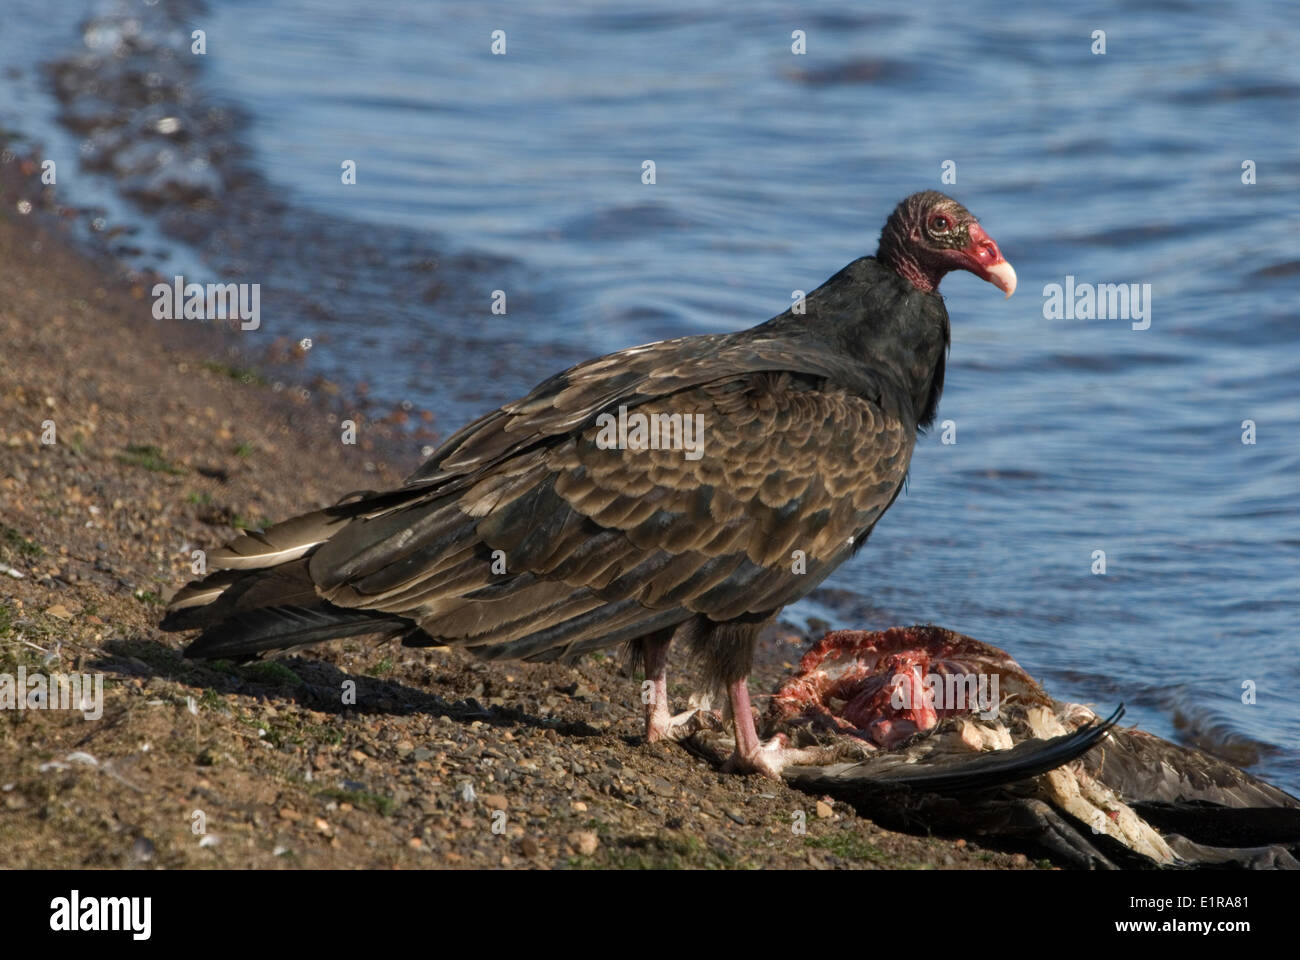 A Turkey Vulture eating of the carcass of a Canada Goose ...